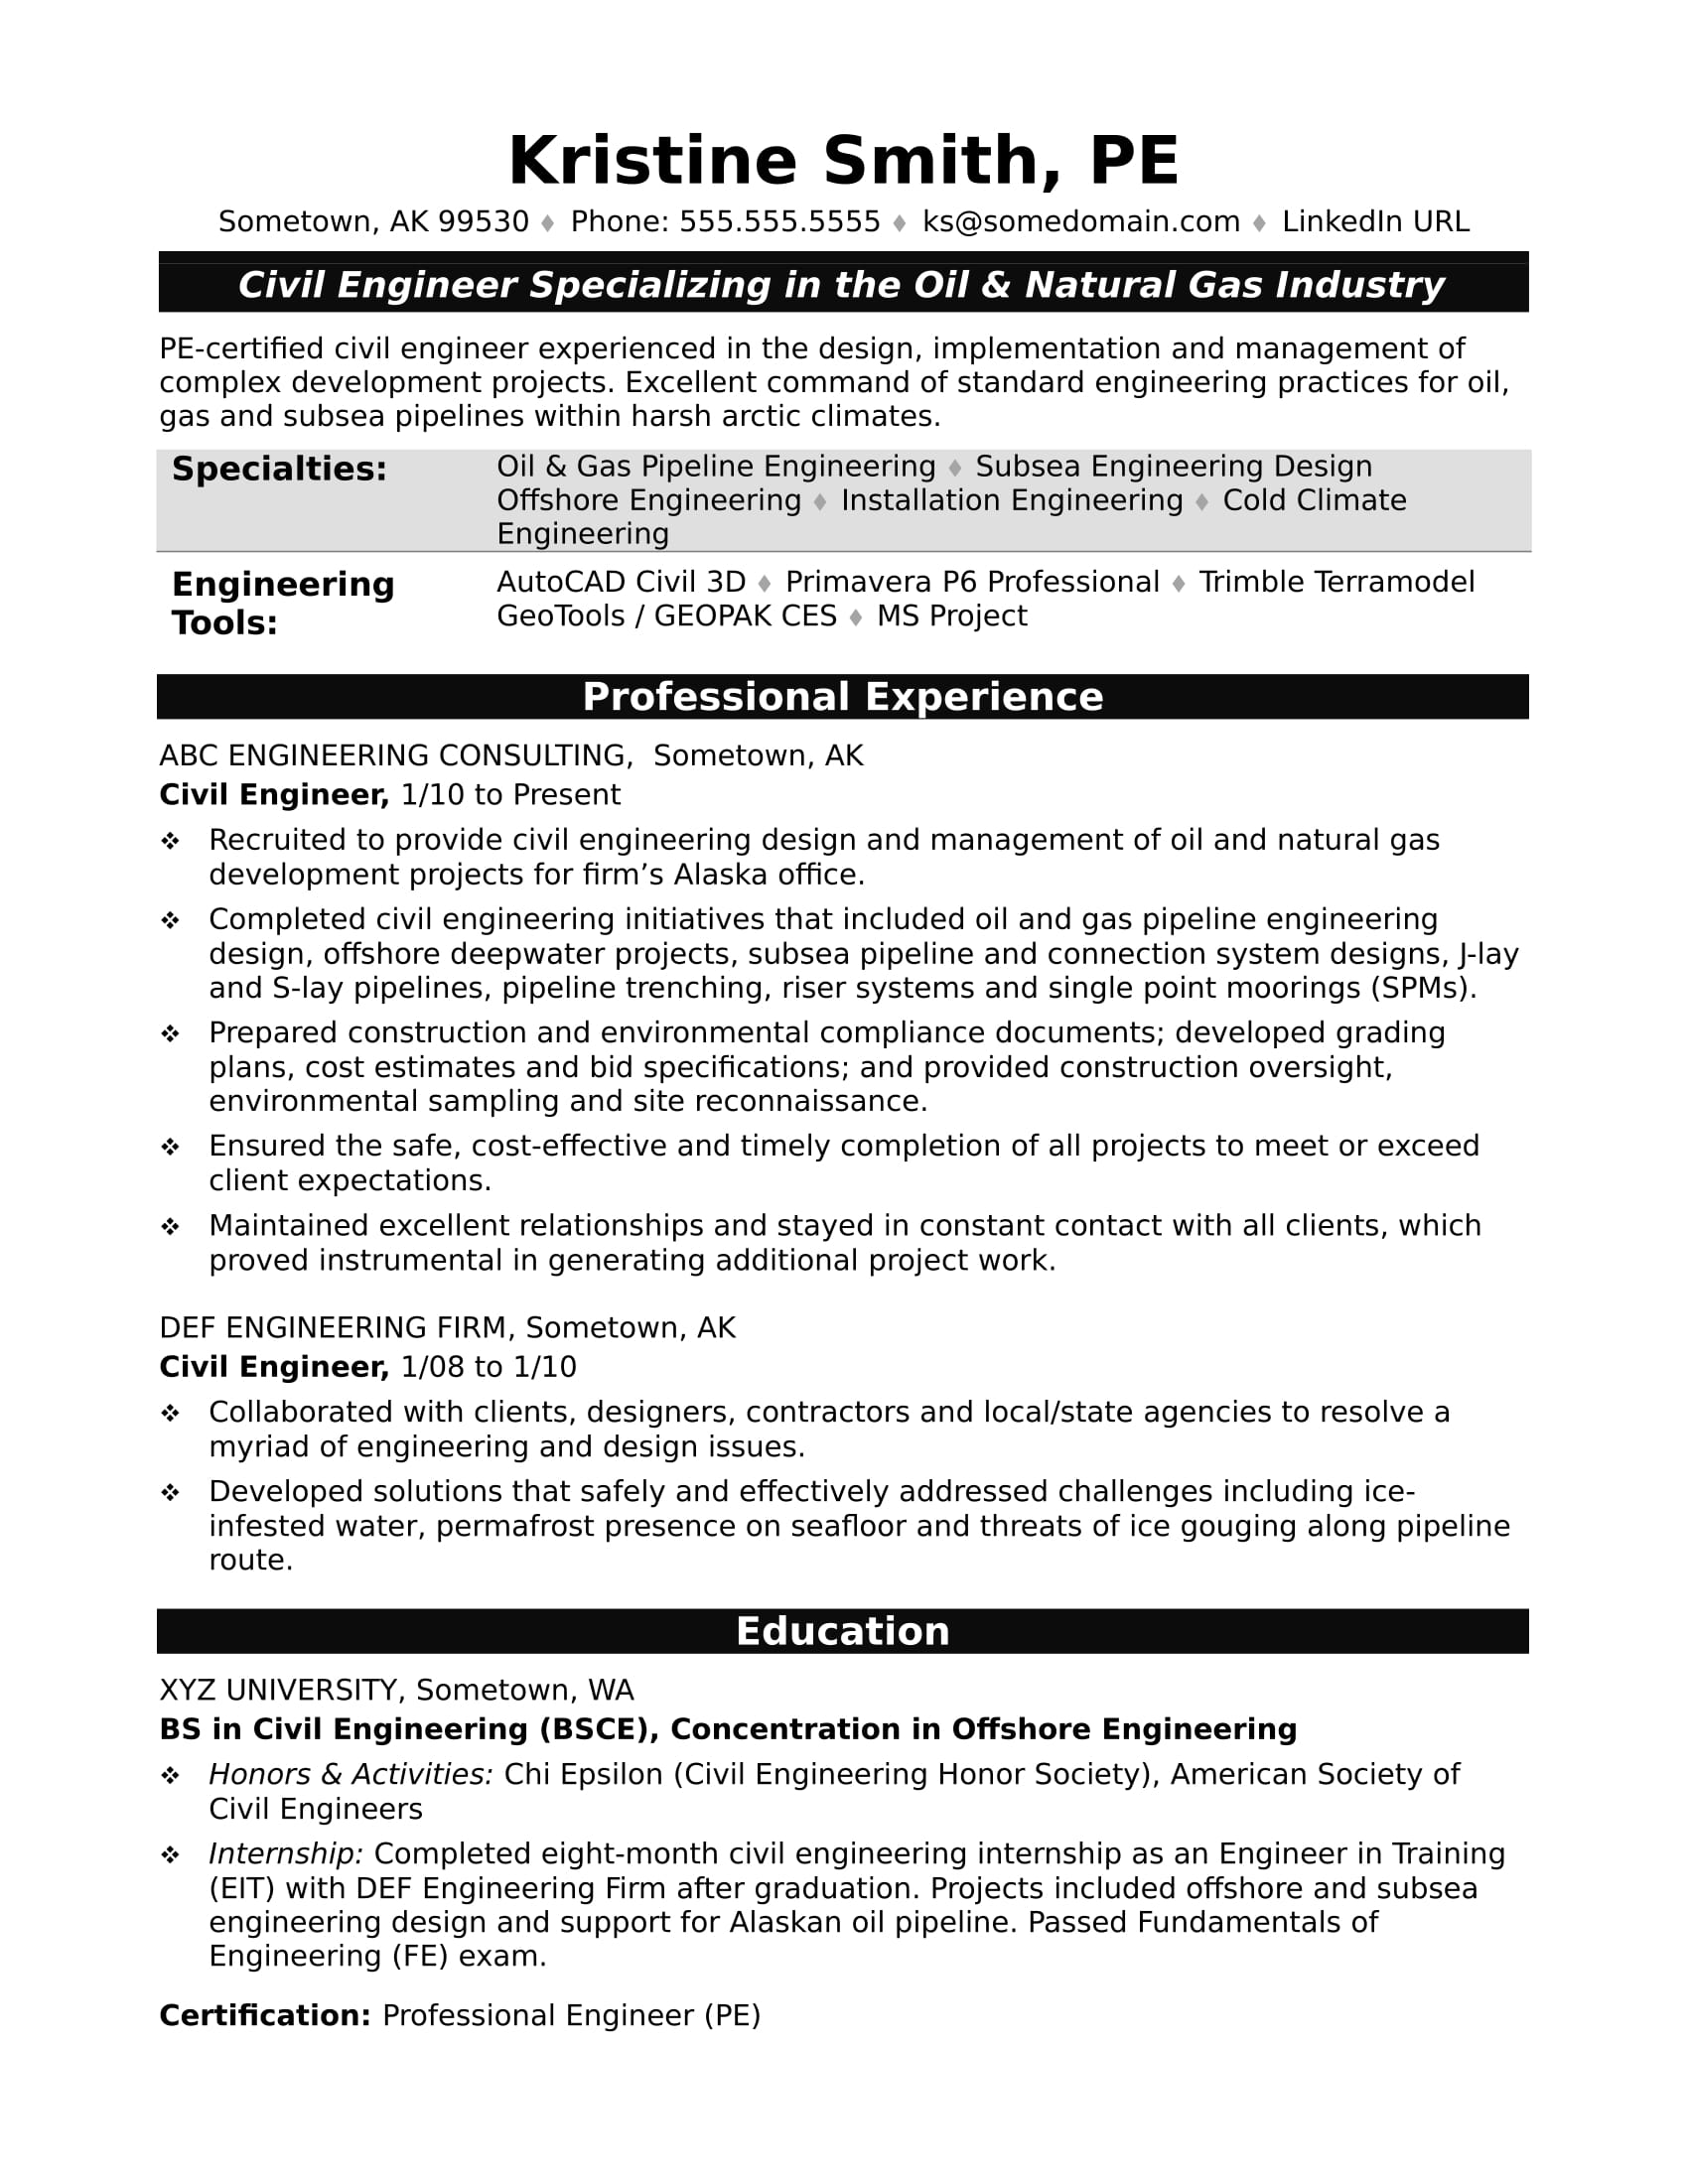 Sample resume for a midlevel civil engineer monster sample resume for a midlevel civil engineer thecheapjerseys Gallery